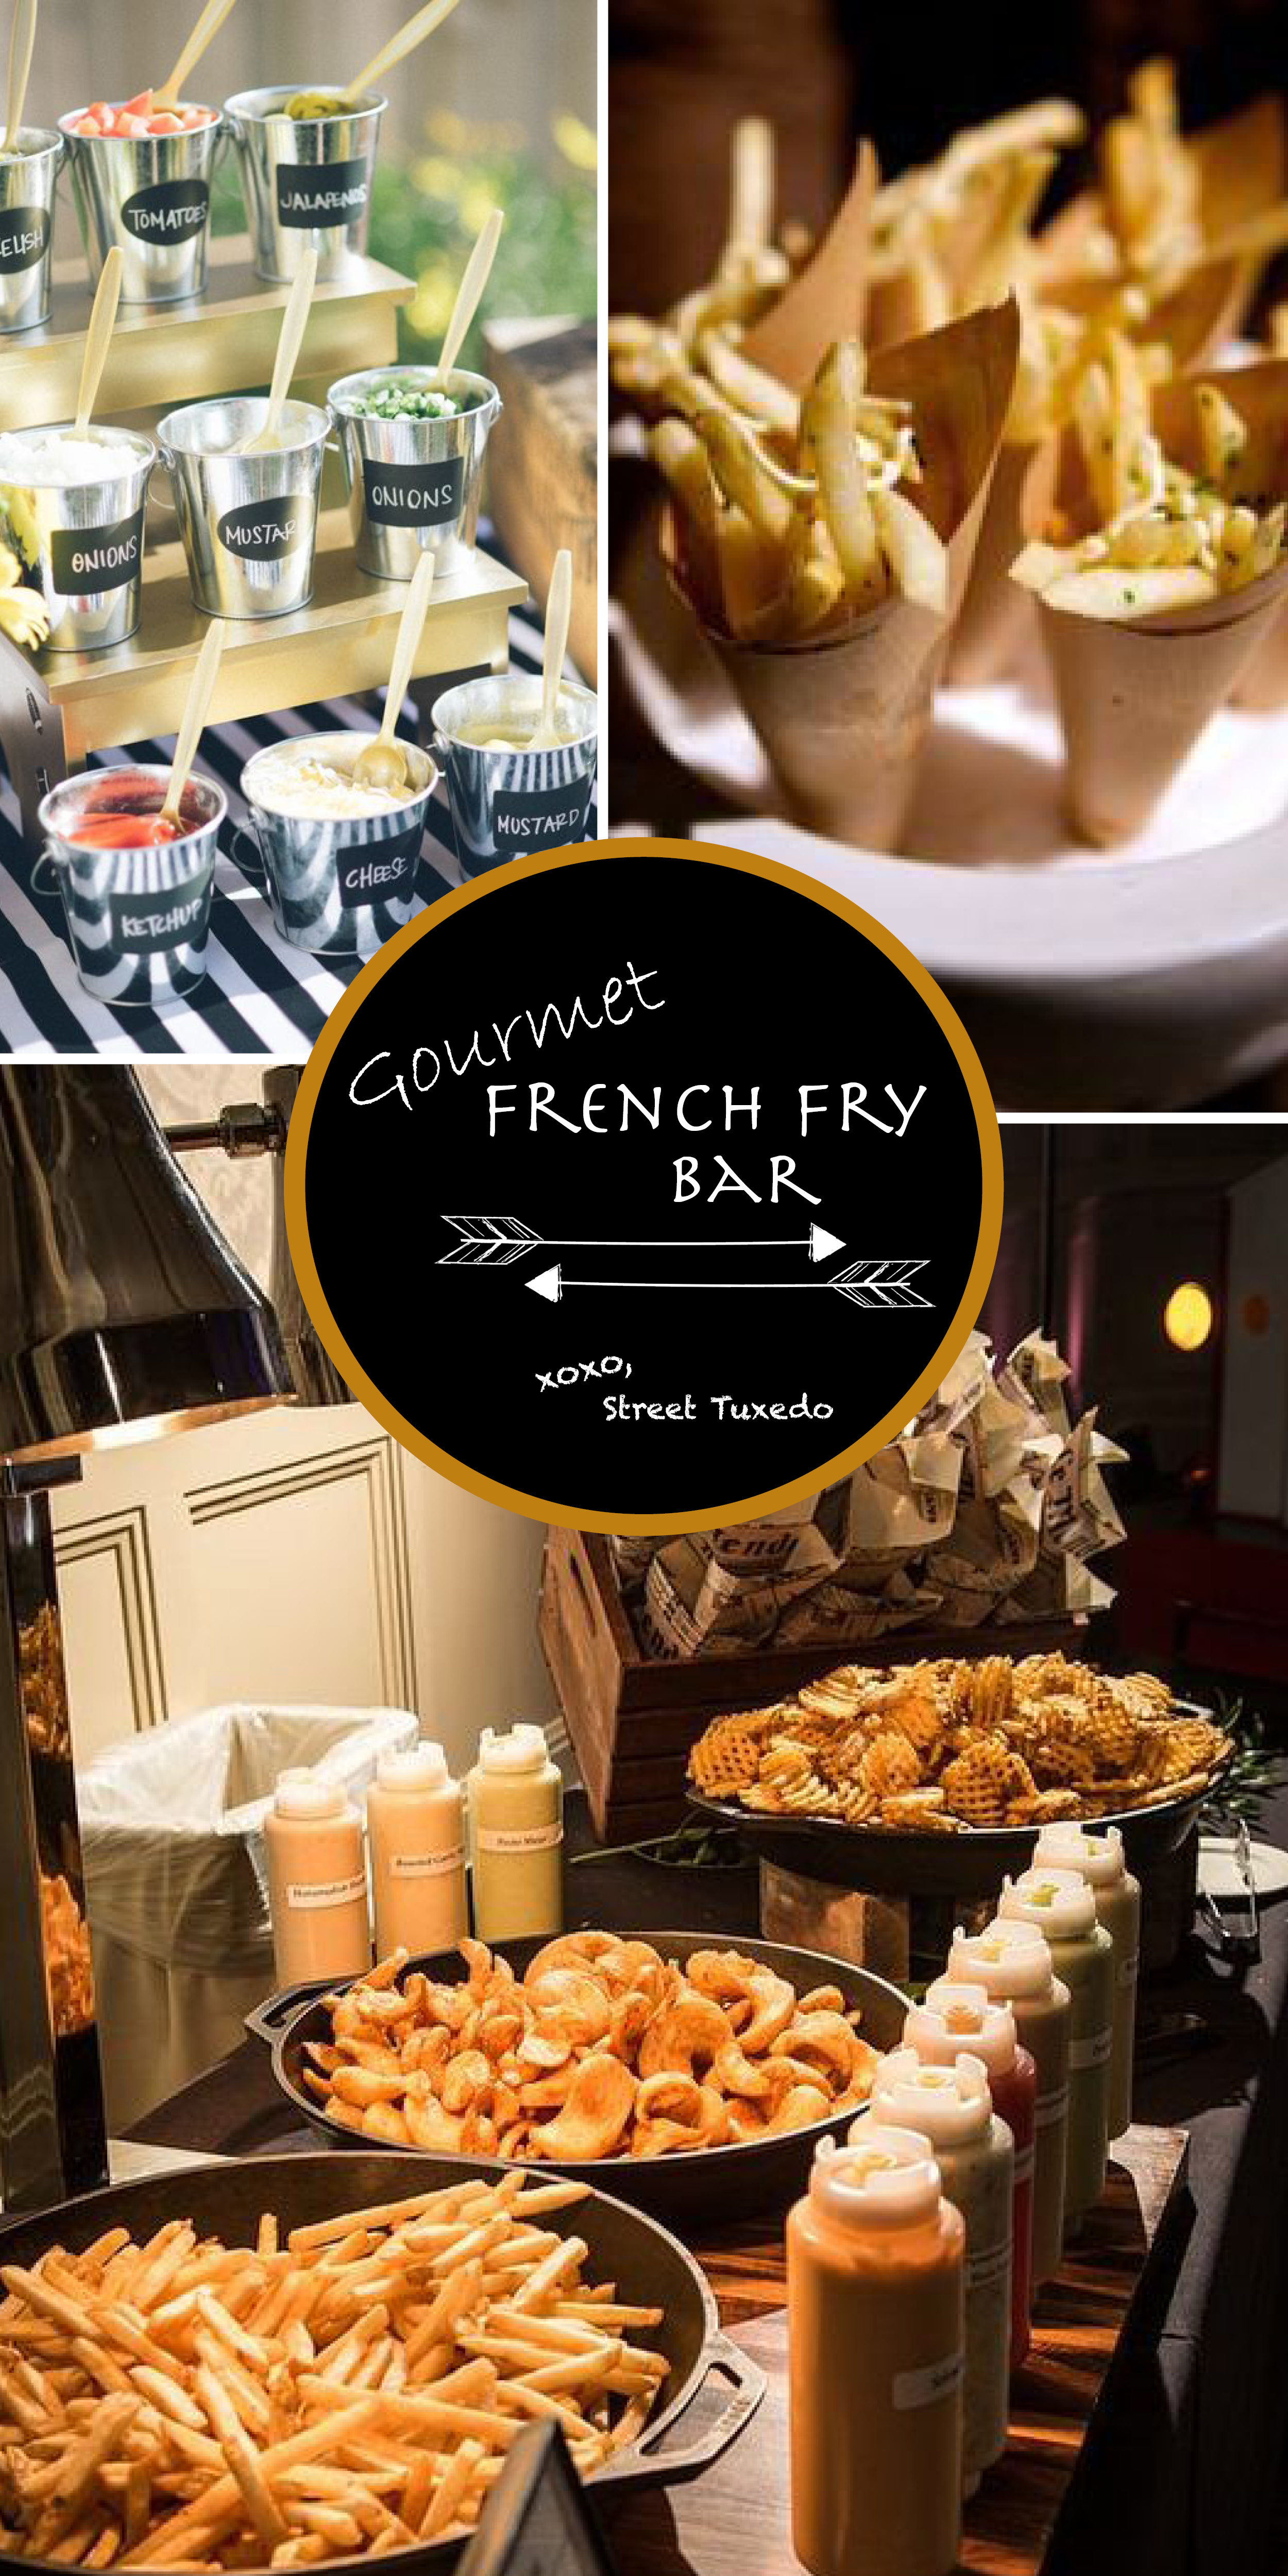 Gourmet French Fry Bar